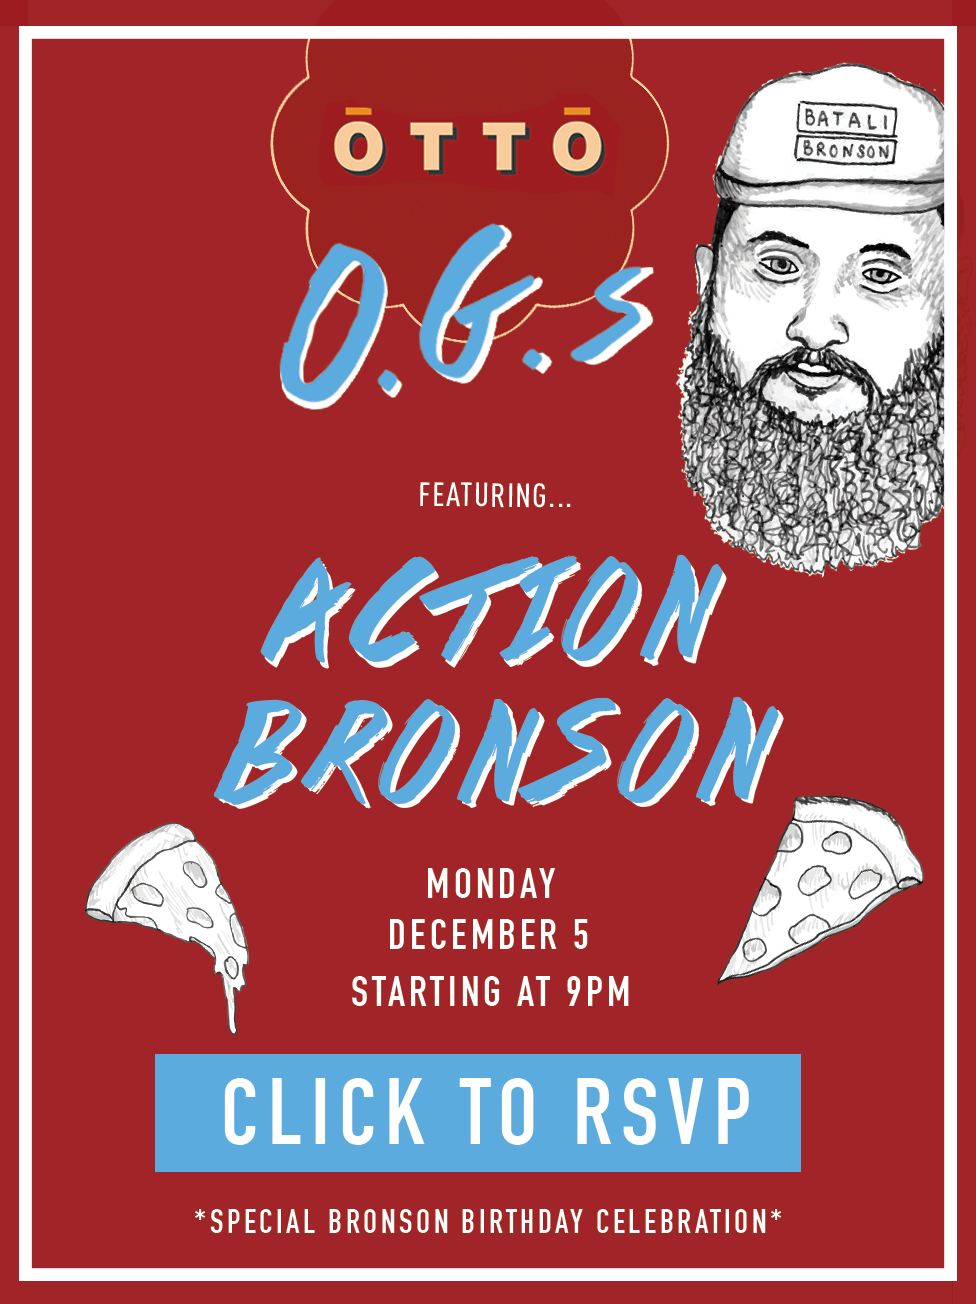 OTTO OGs ACTION BRONSON.png